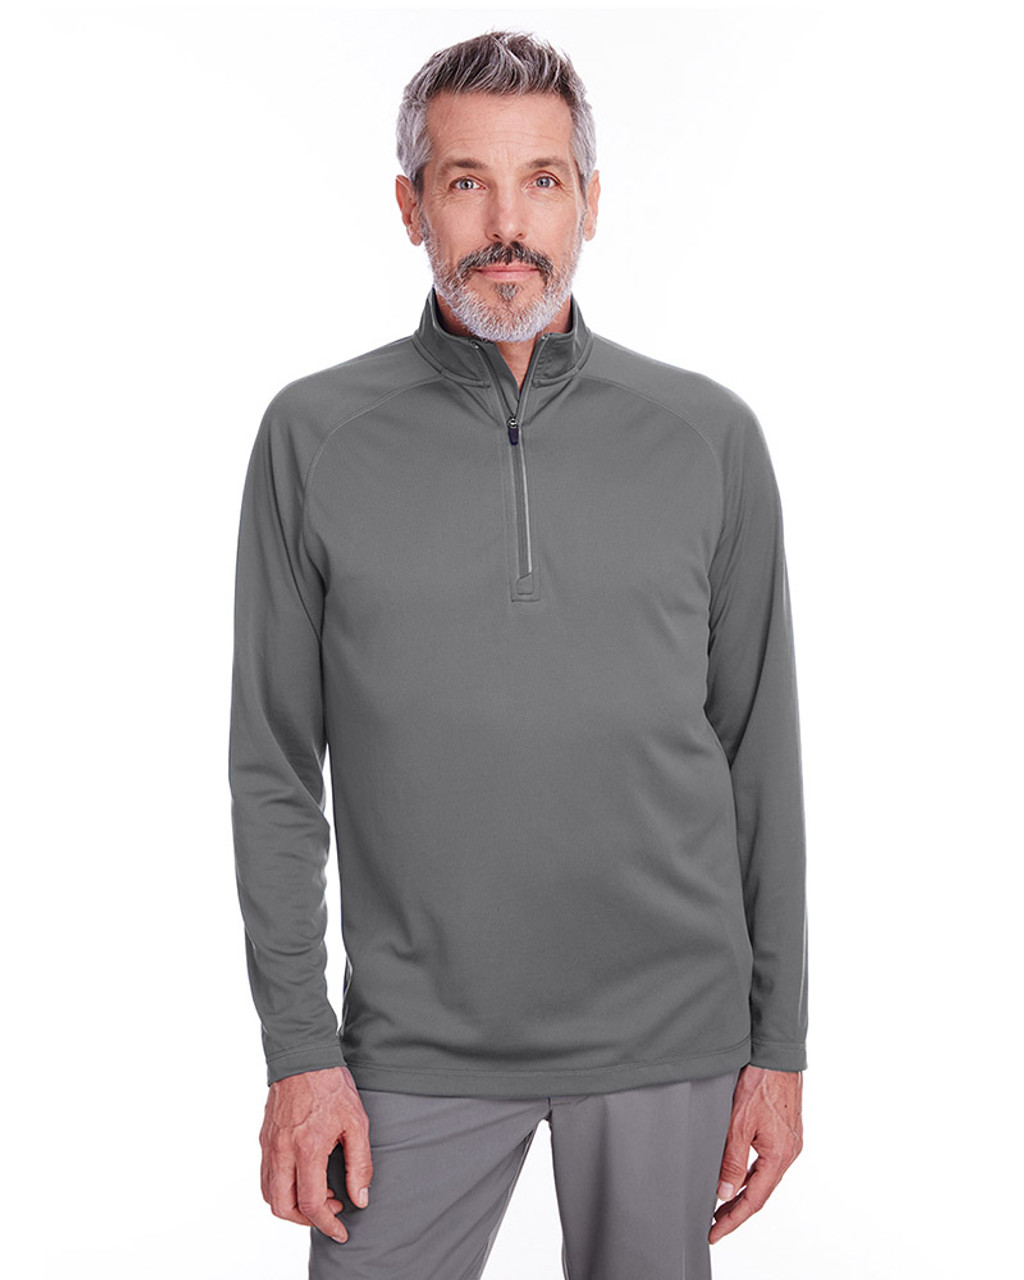 Polar - S16797 Spyder Men's Freestyle Half-Zip Pullover Sweatshirt | Blankclothing.ca